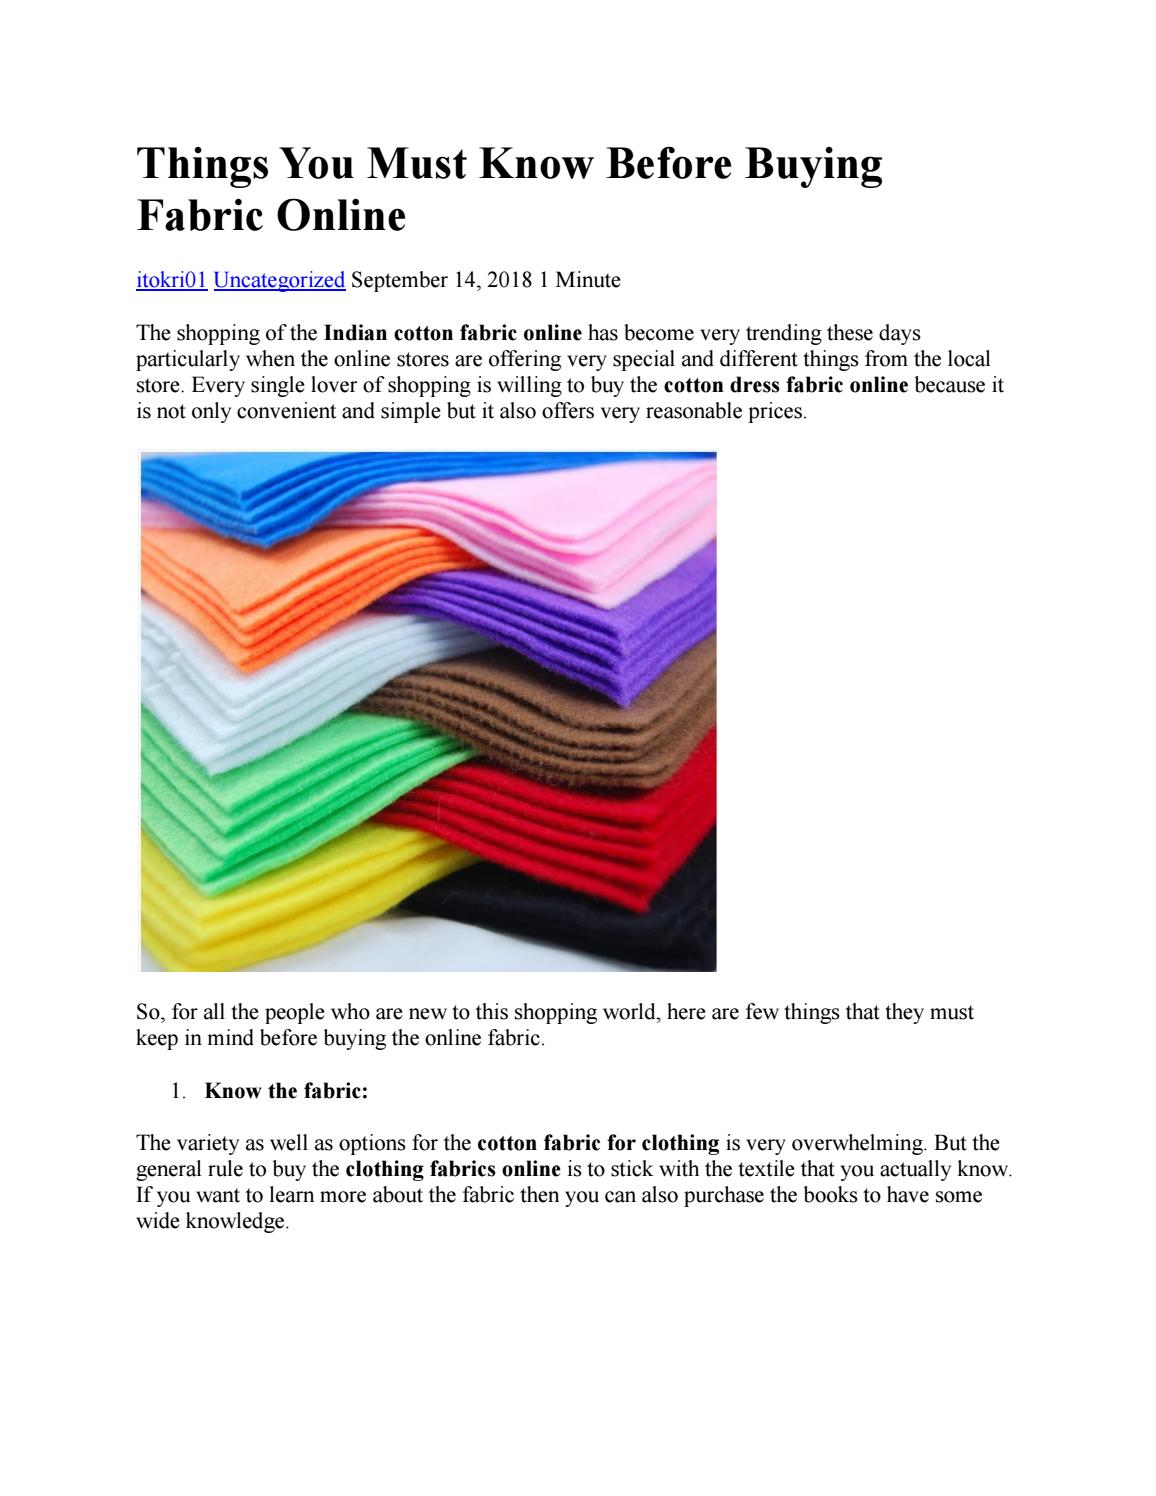 Things You Must Know Before Buying Fabric Online by itokri01